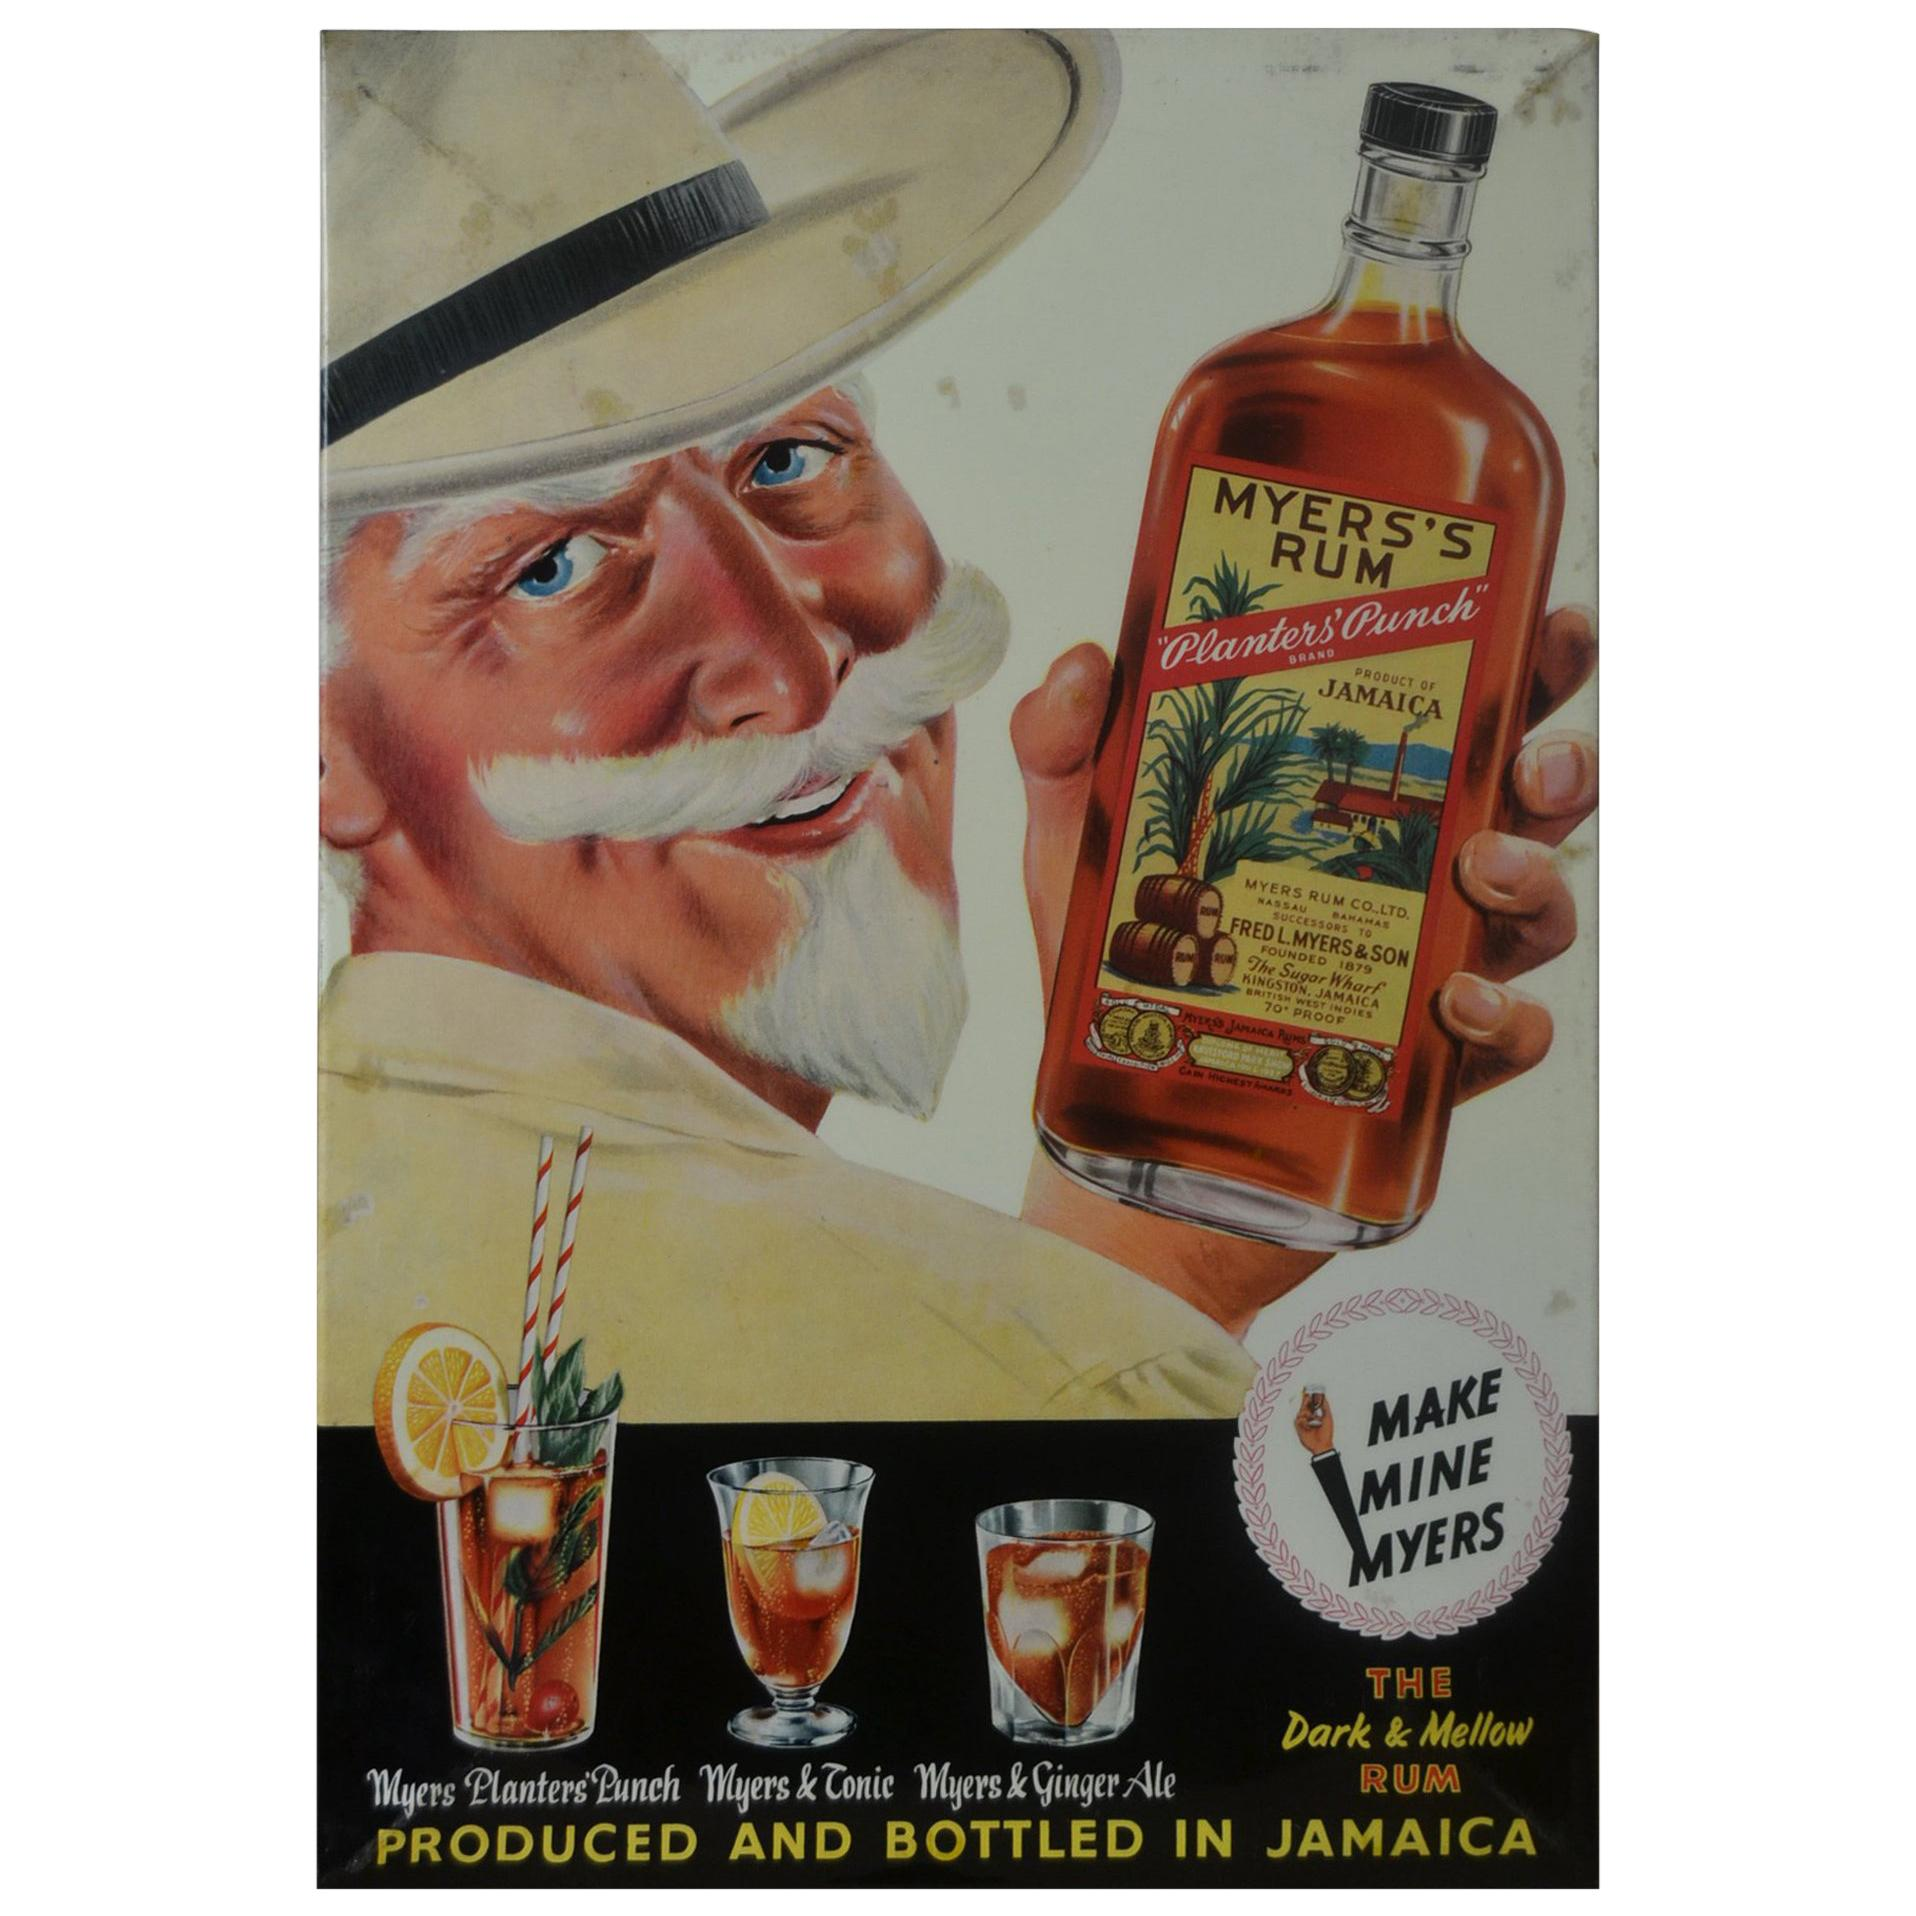 1960s Advertising Sign for Myers's Rum, Glacoide on Cardboard